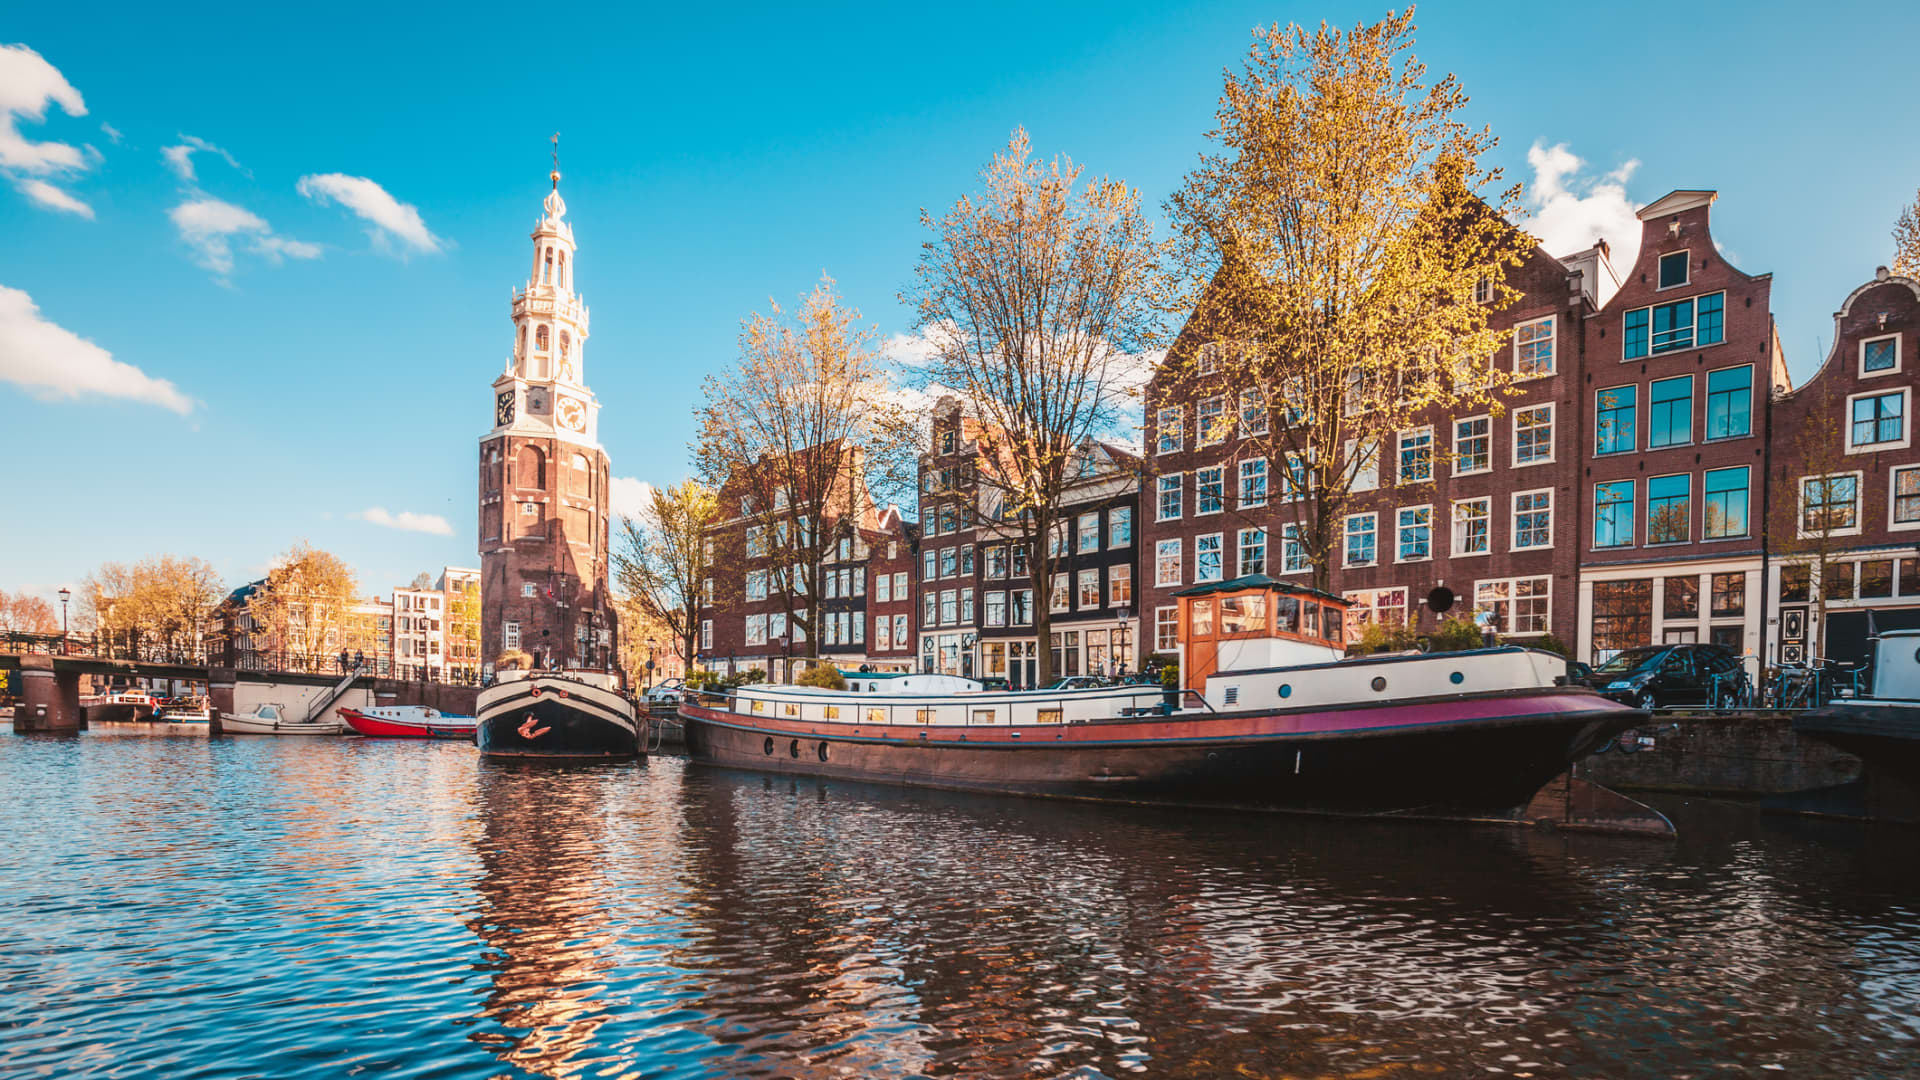 Historic center of Amsterdam, the capital city of the Netherlands.